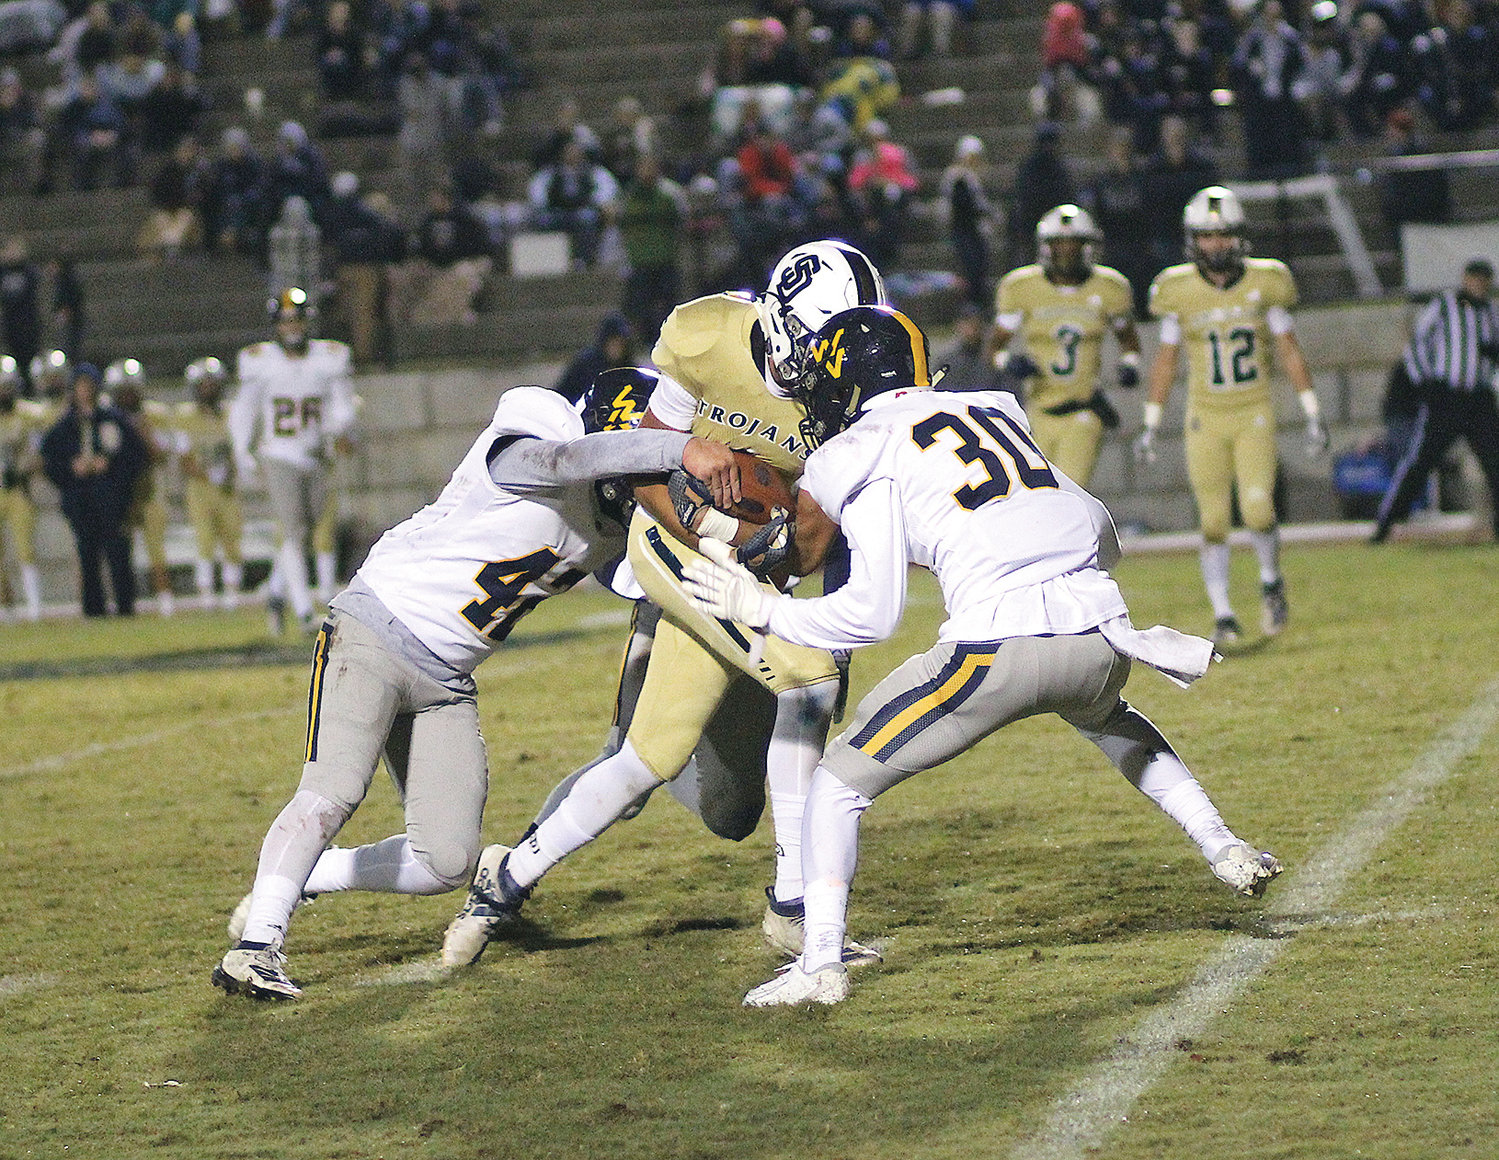 WALKER VALLEY MUSTANGS Reid Gibson (30) and Eli Denton (42) bring down a Soddy-Daisy runner. The Mustangs face Knox West in the opening round of the TSSAA football playoffs Friday, in Knoxville.